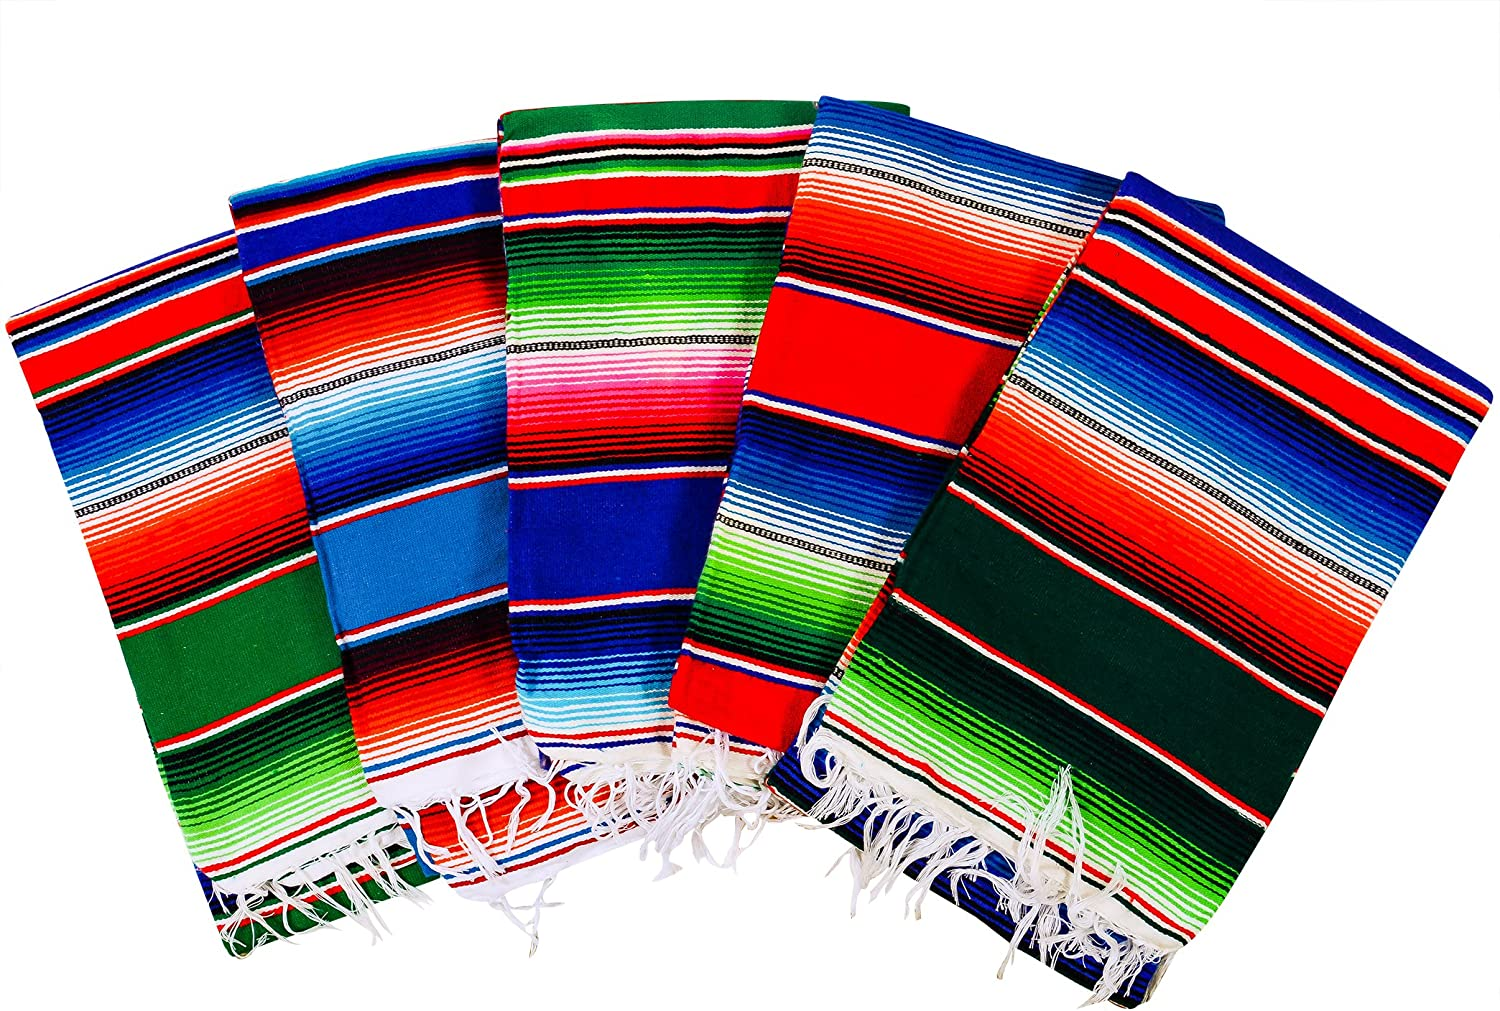 MEXIMART's Authentic Medium Mexican Blankets Bla New Shipping Free Fresno Mall Colorful Serape